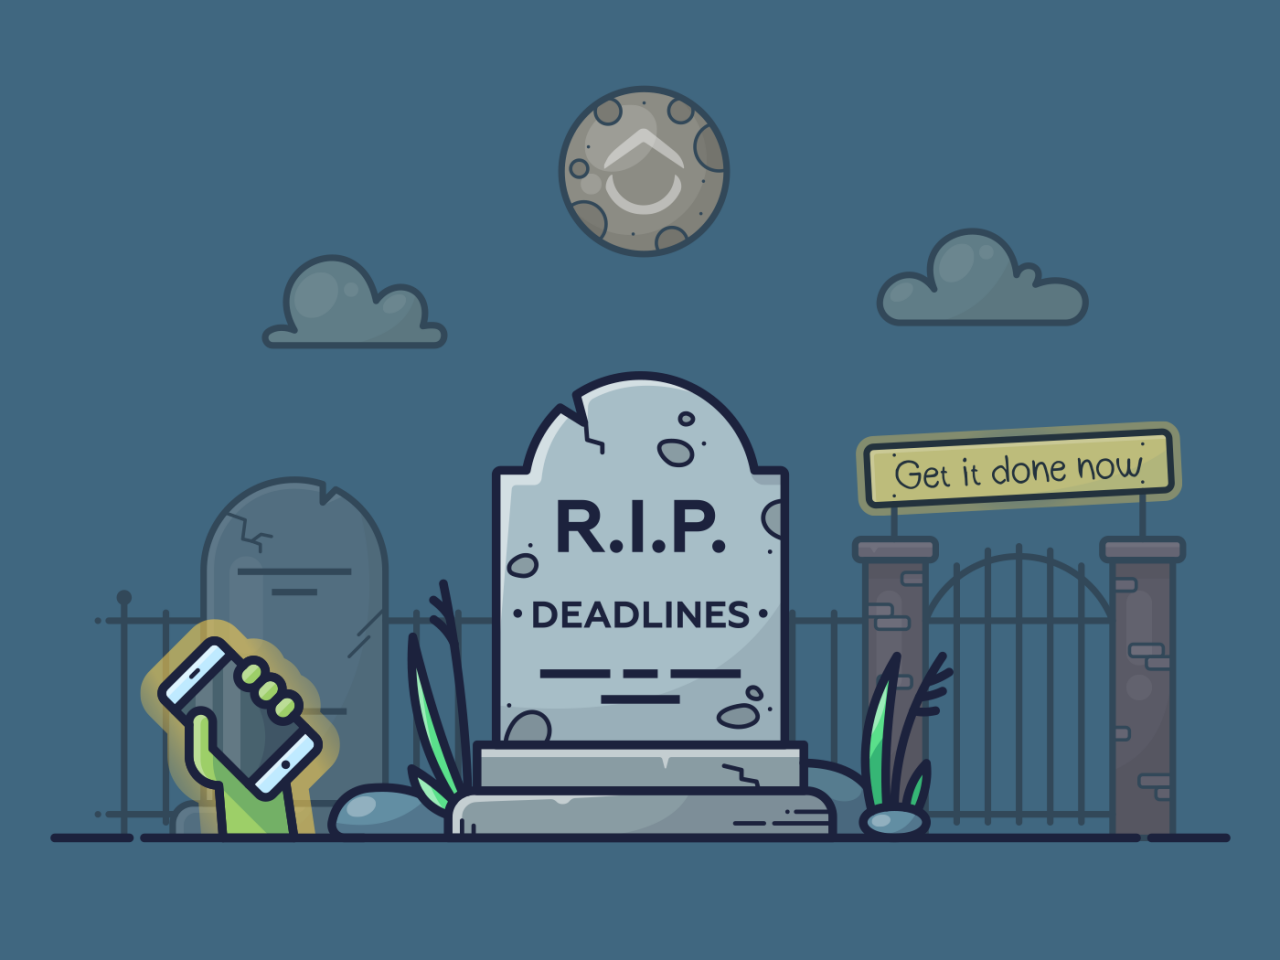 Are Deadlines Deadly?